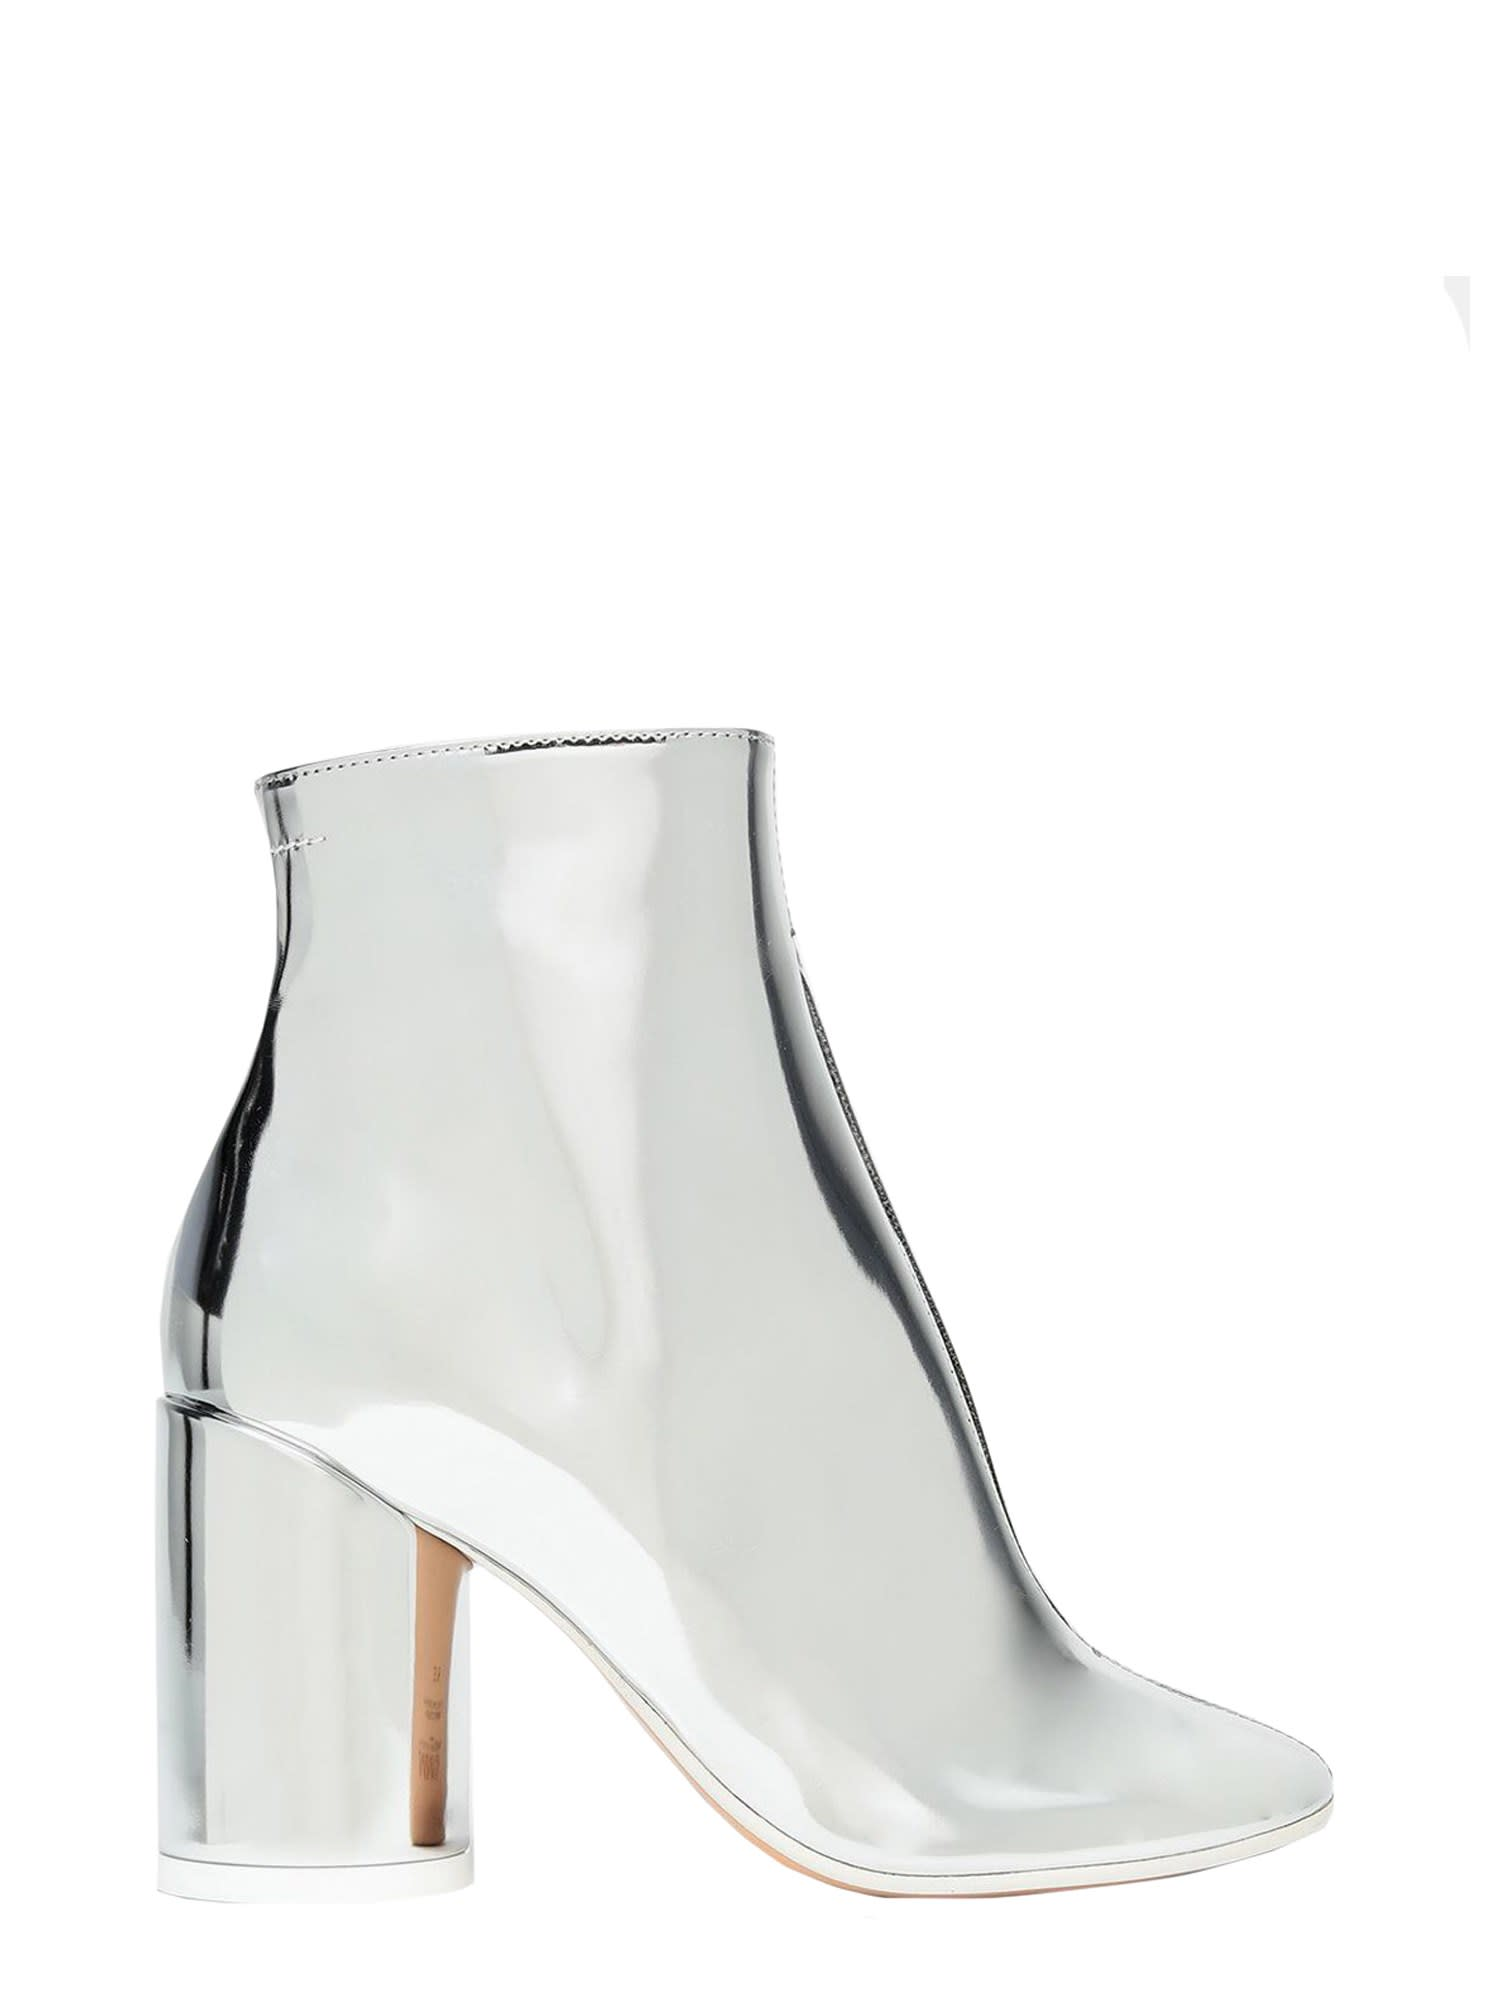 Mm6 Maison Margiela MIRRORED BOOTS WITH 6 HEEL